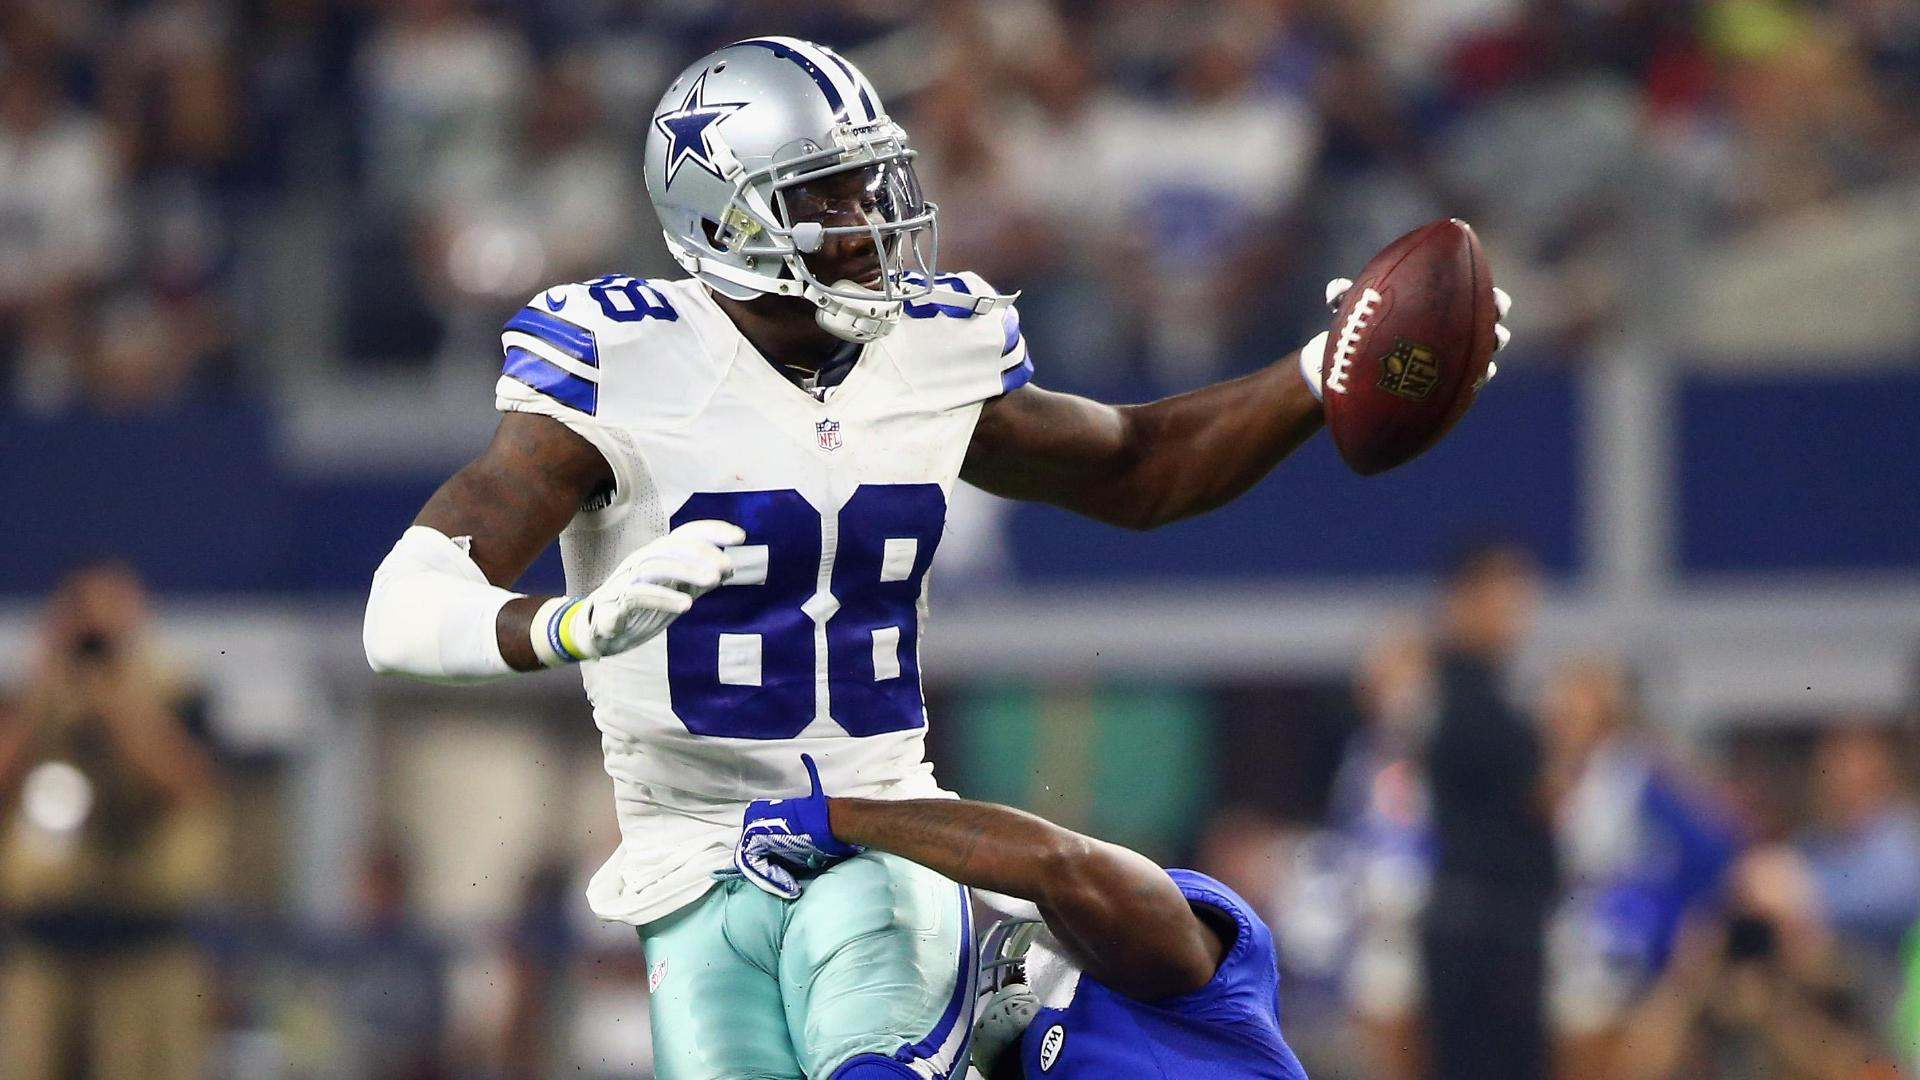 Bmartin_star-blog_could-special-coach-help-dez-bryants-route-running